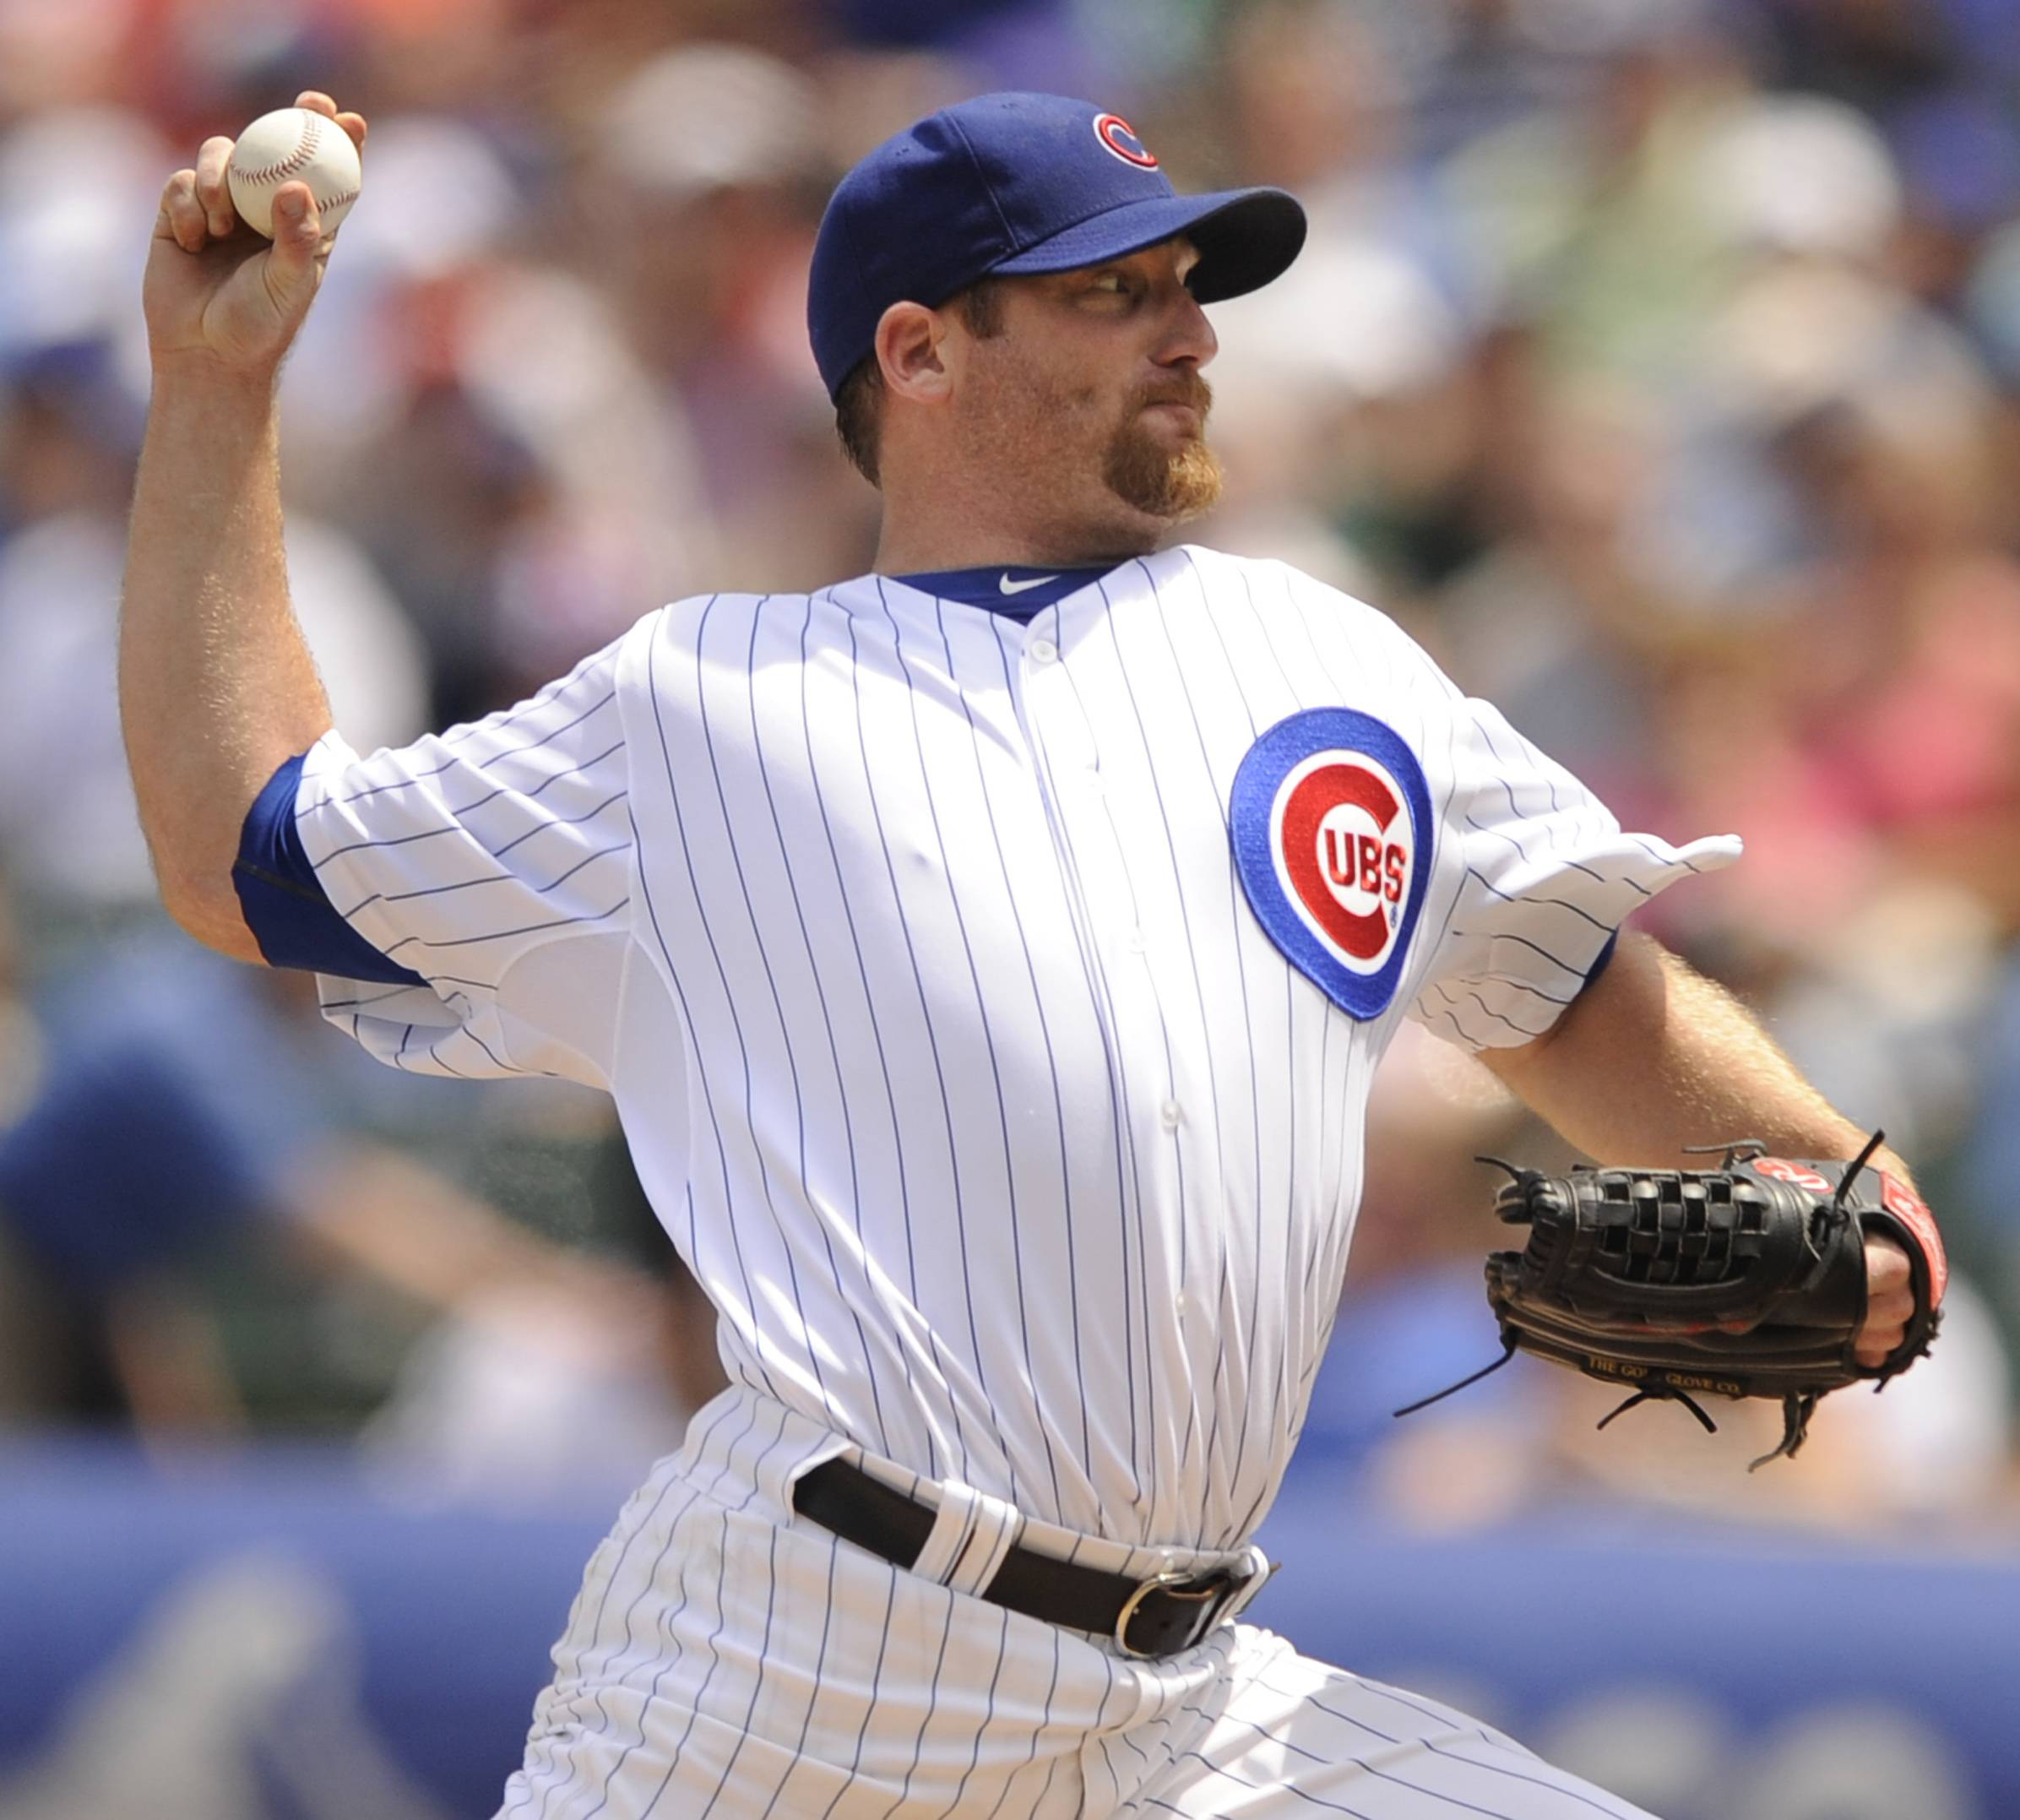 Ryan Dempster allowed 4 hits in 8 innings of work Friday afternoon. The Cubs won 2-1.